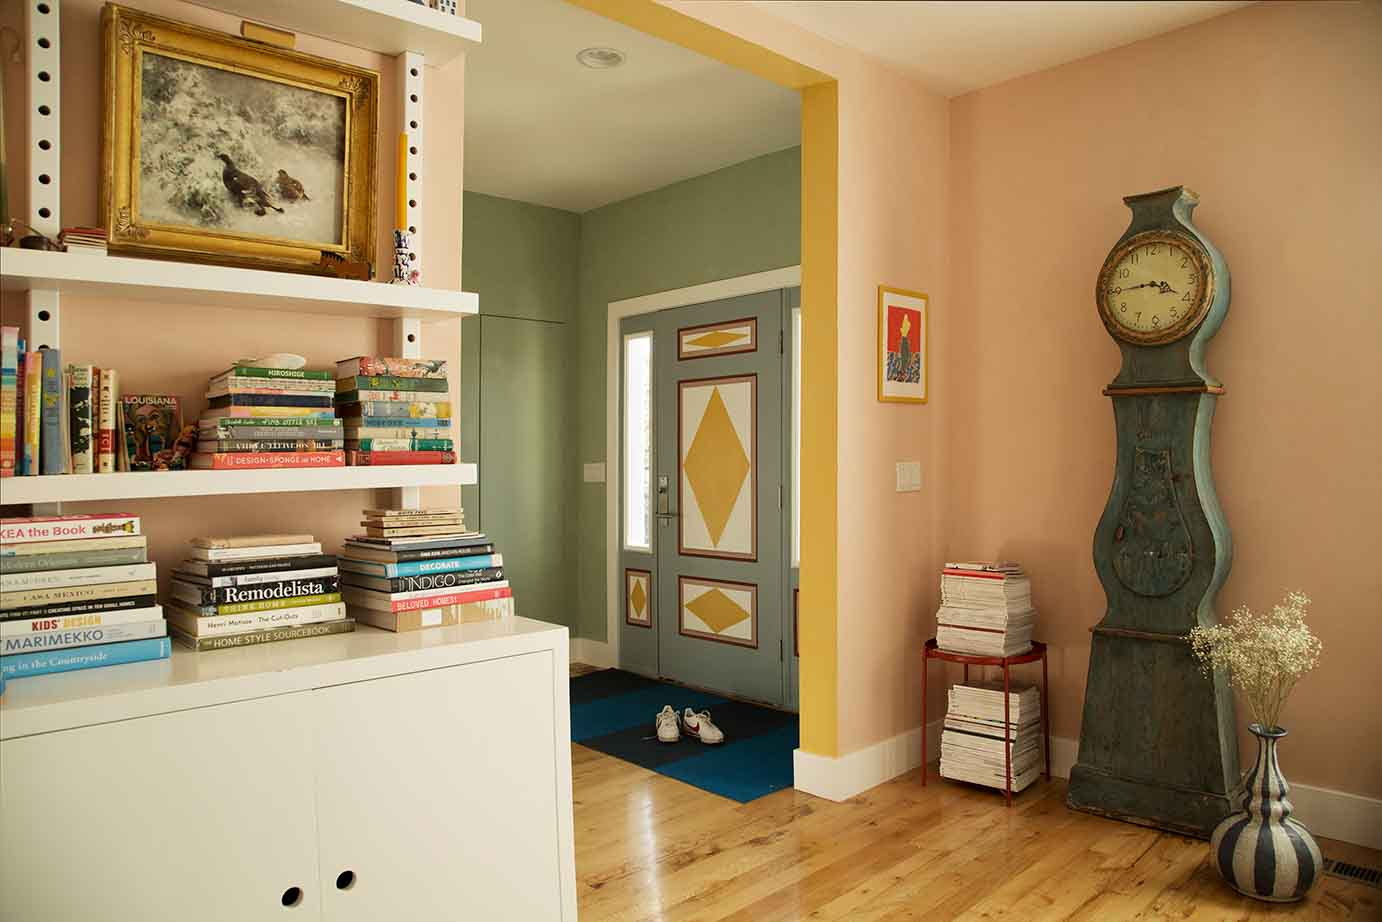 Livingroom and hallway in Pure & Original Fresco lime paint